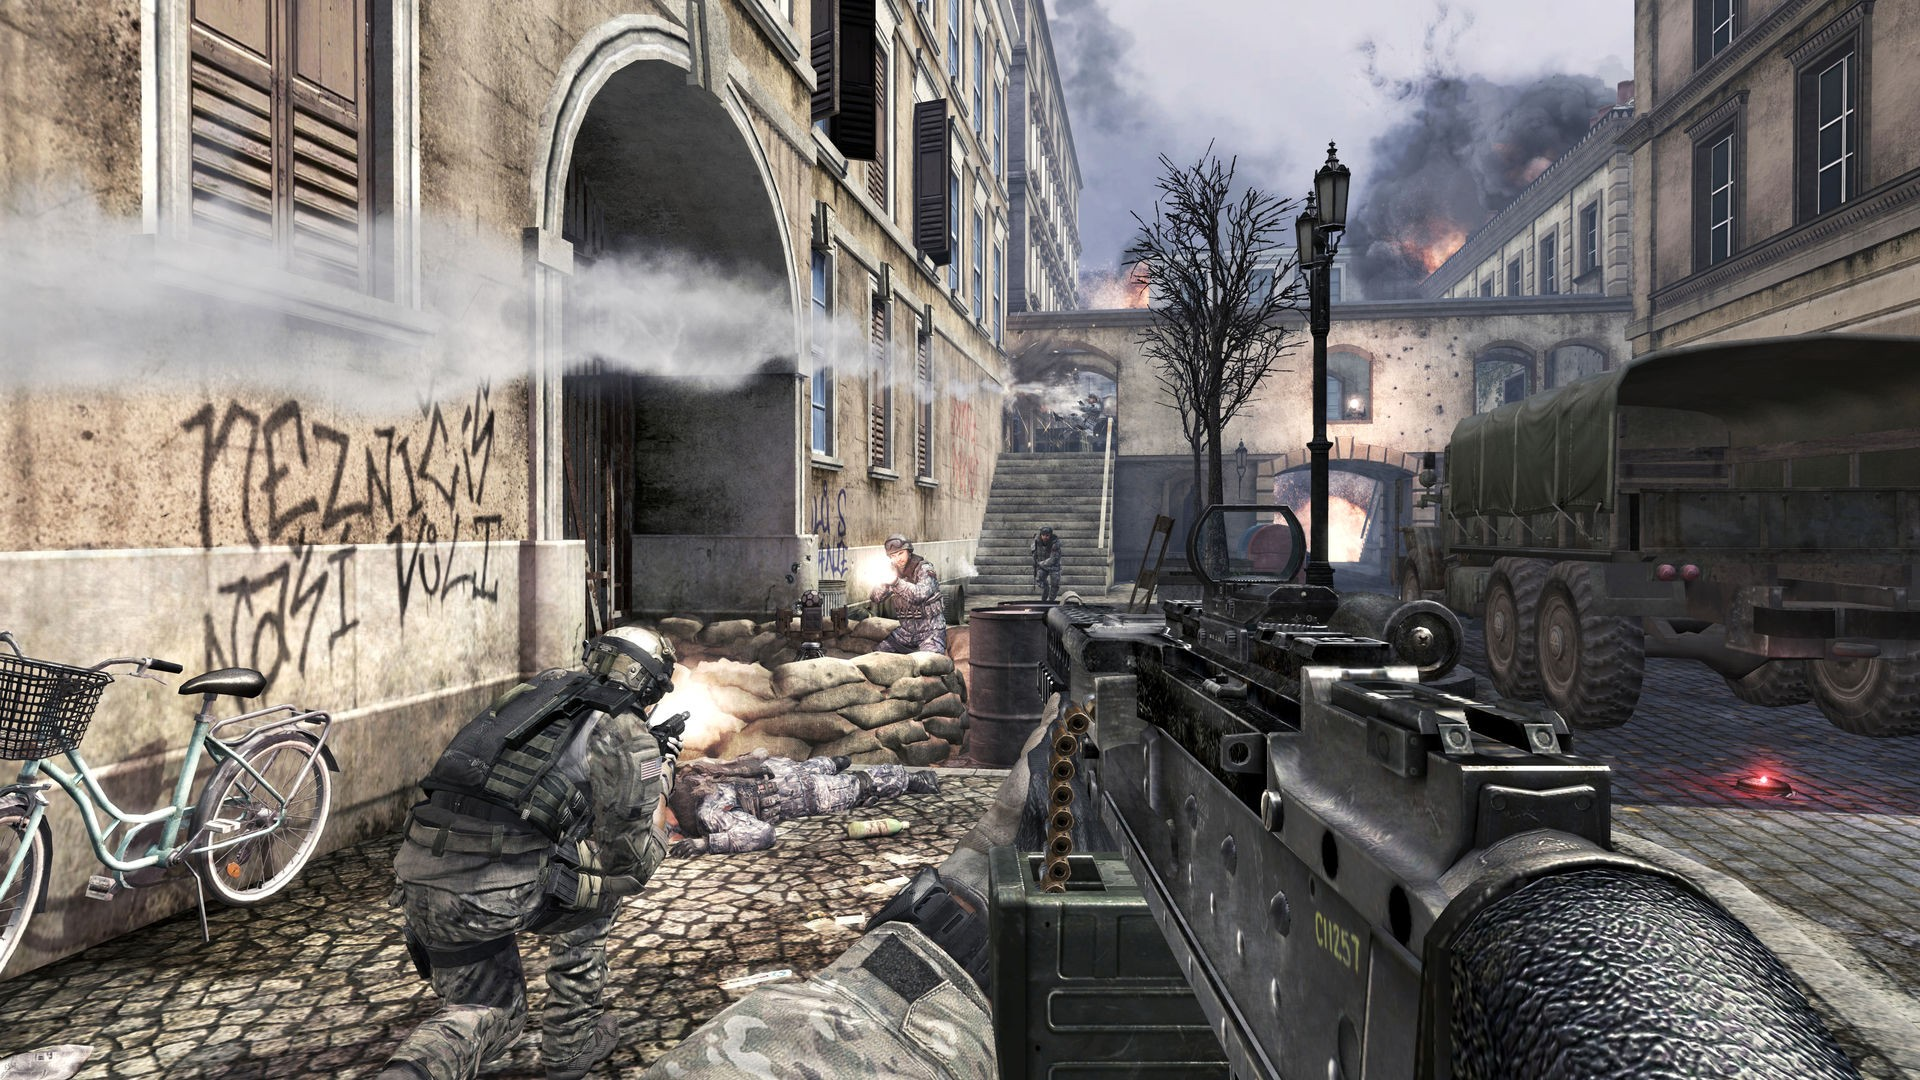 Buy call of duty modern warfare 3 steam for Build a room online